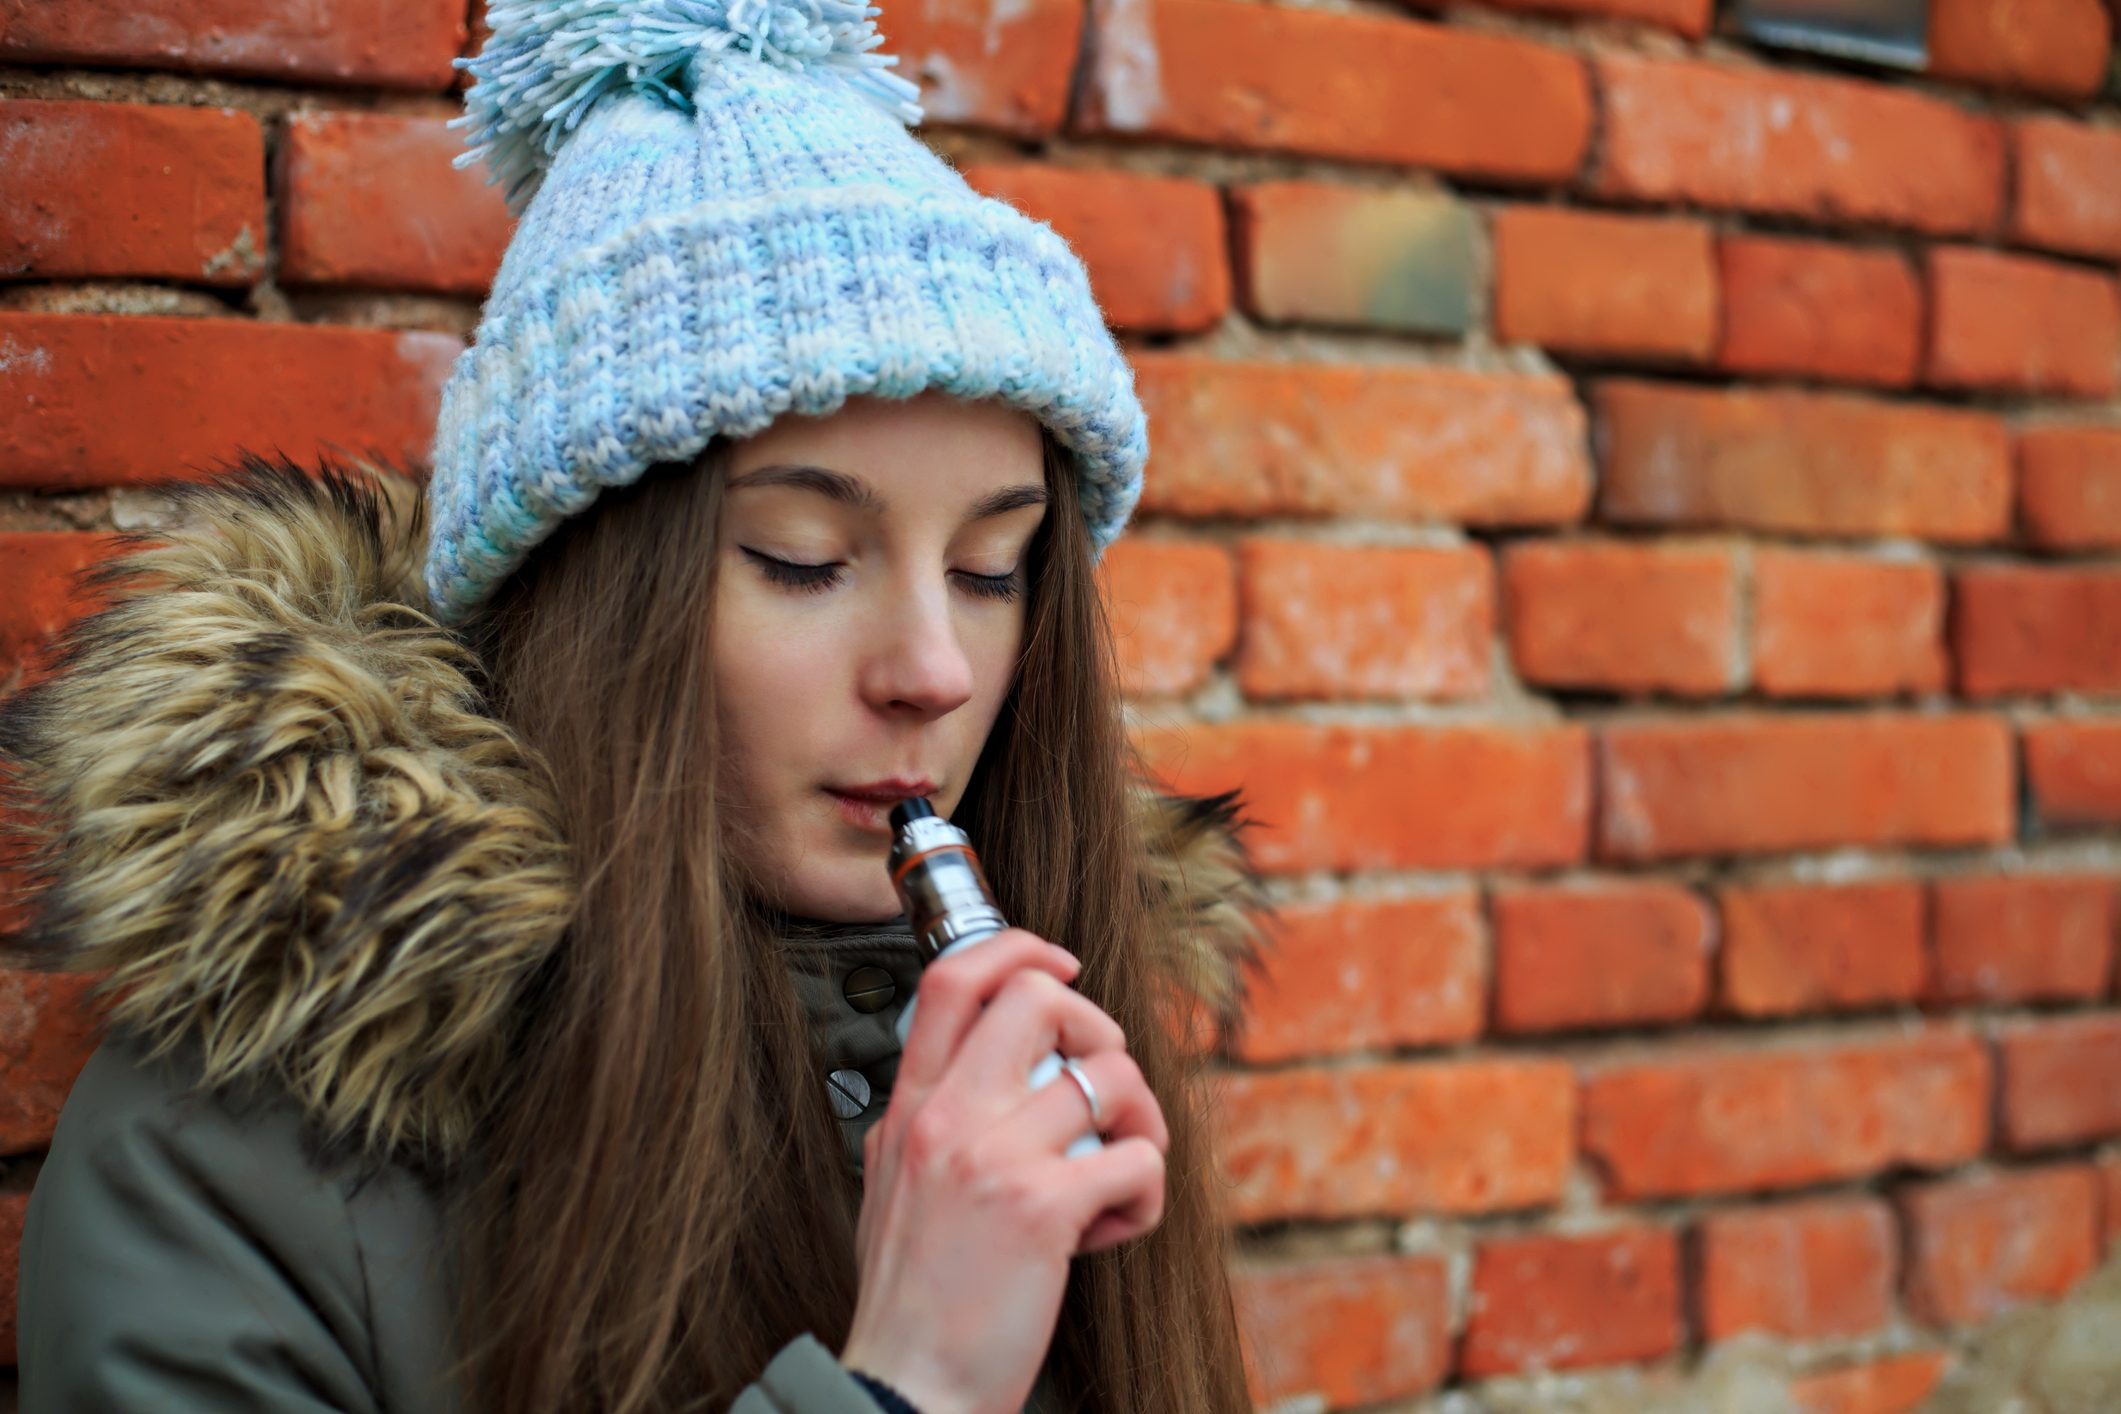 Vape teenager. Young pretty white girl in blue cap and green jacket smoking an electronic cigarette opposite brick wall on the street in the spring.